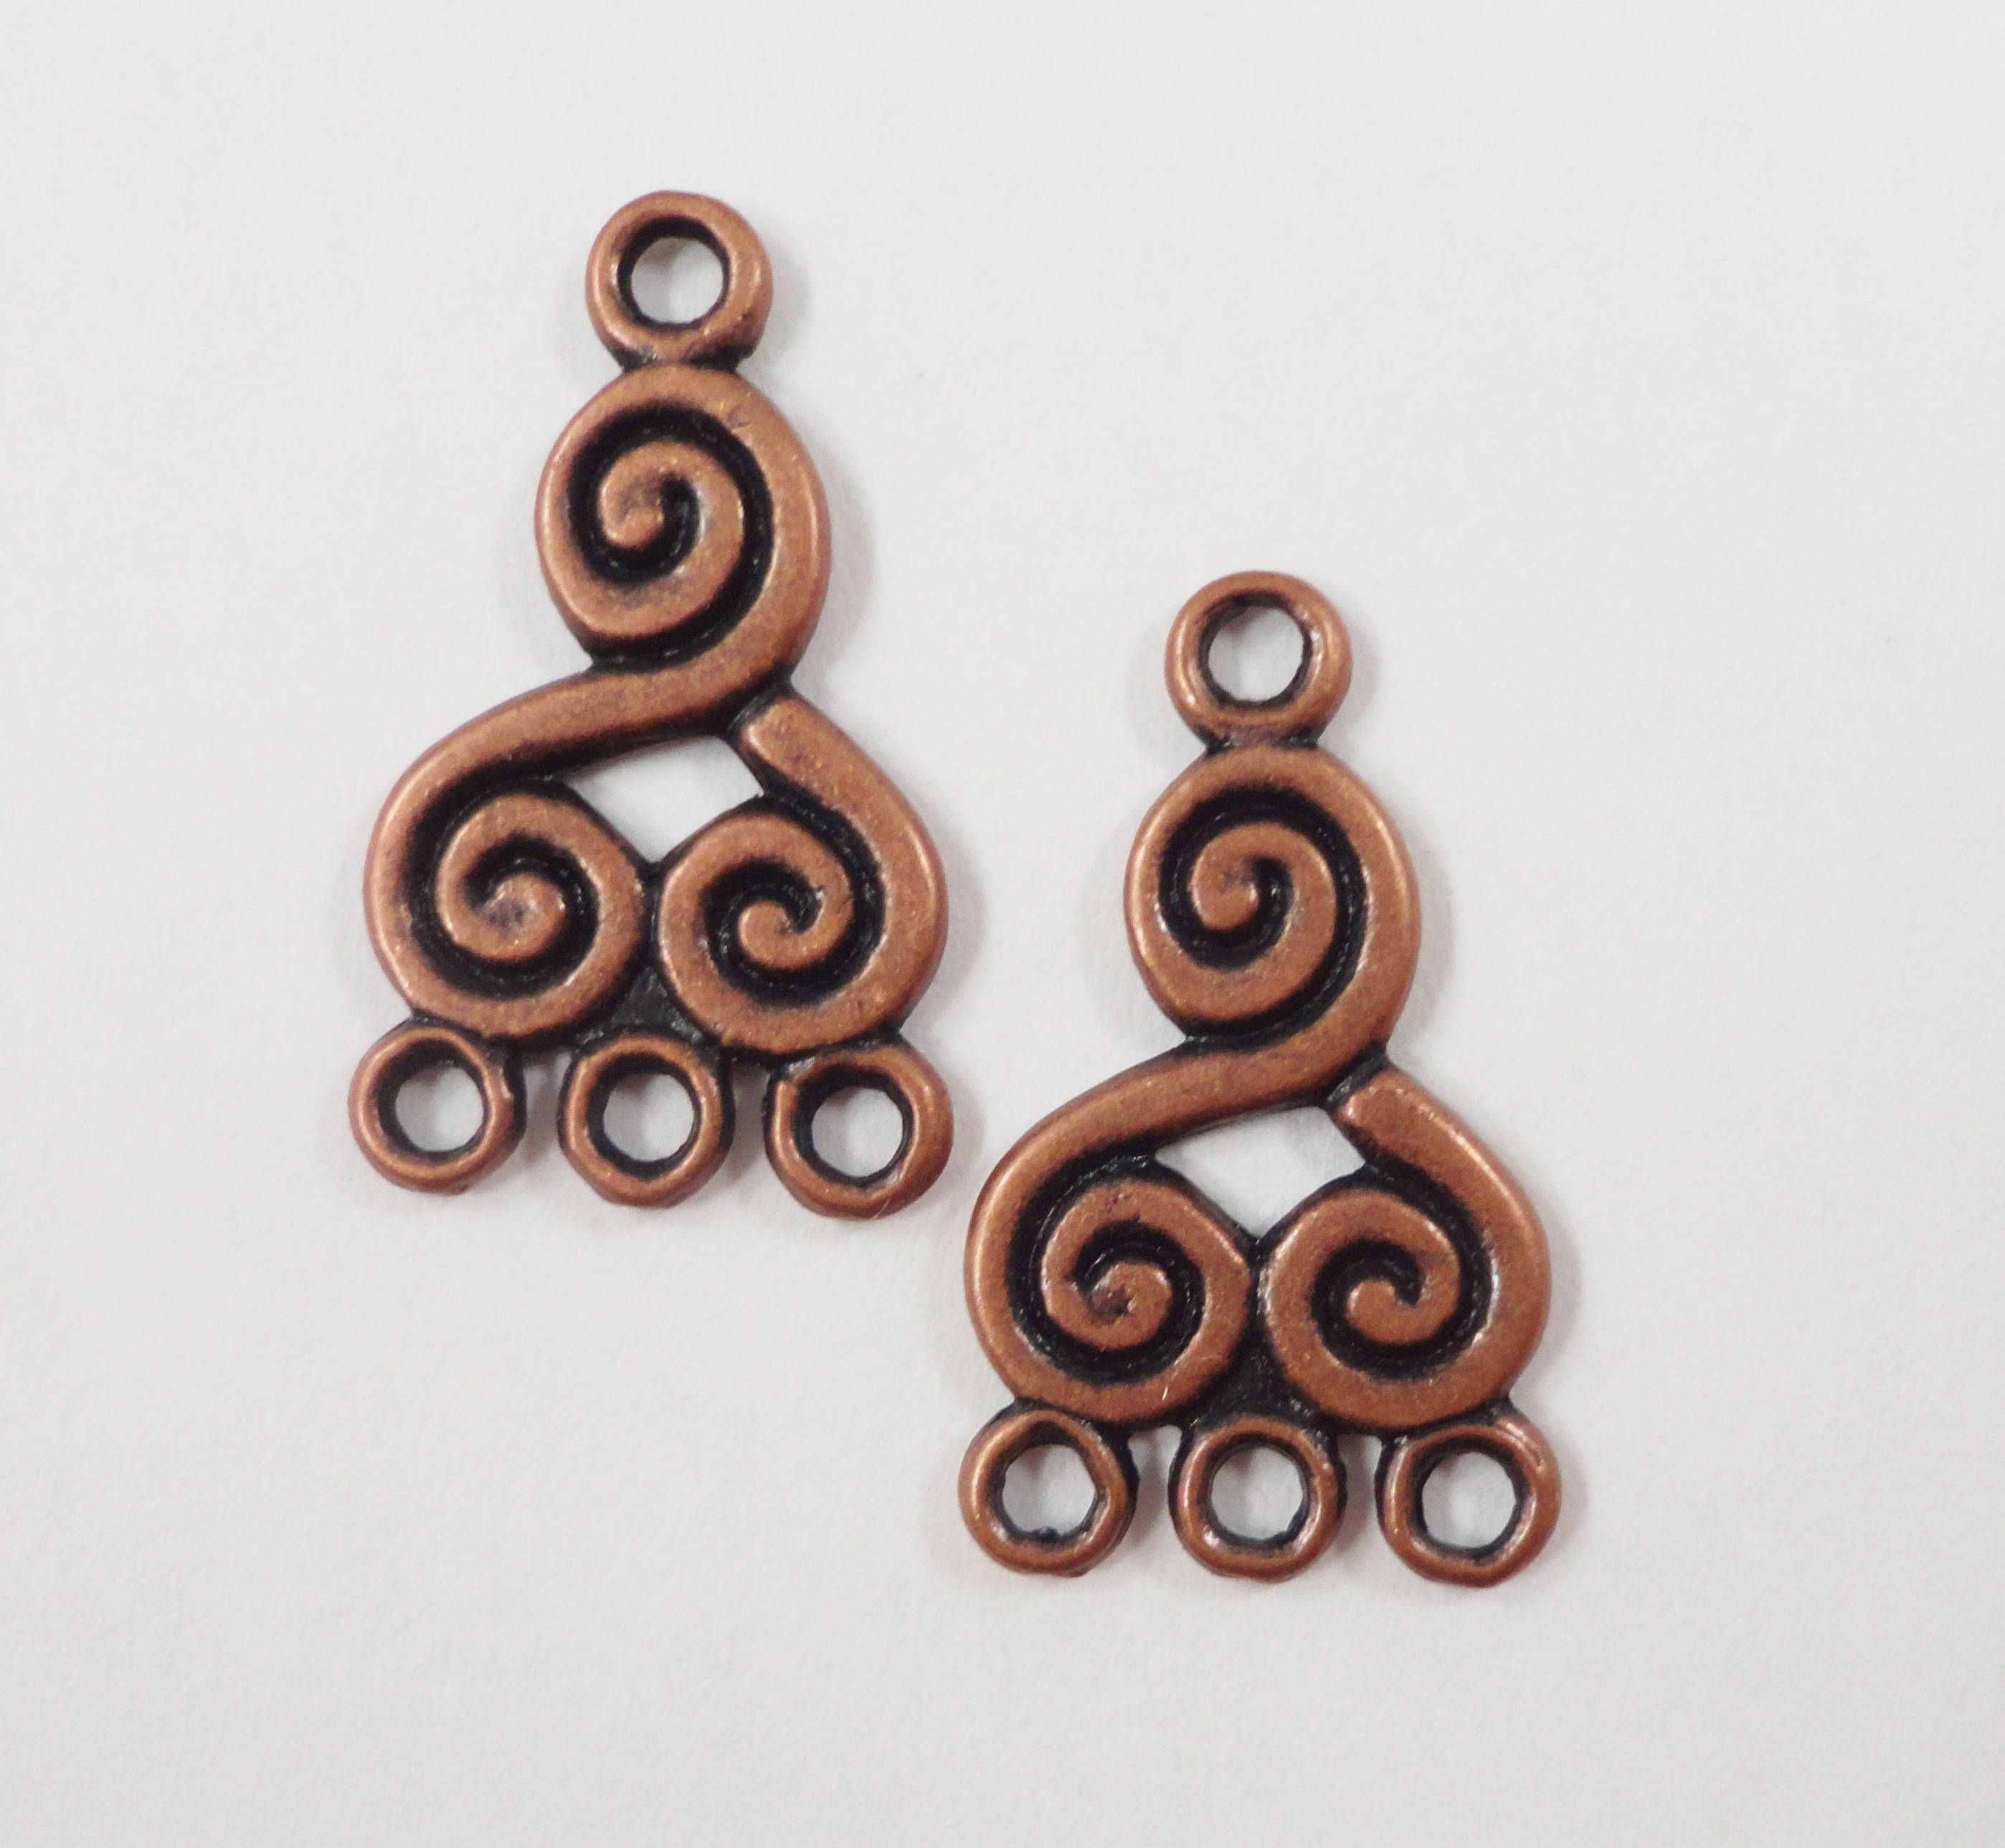 Copper chandelier earring findings 21x13mm antique copper metal copper chandelier earring findings 21x13mm antique copper metal swirl spiral 3 to 1 earring connector jewelry arubaitofo Image collections